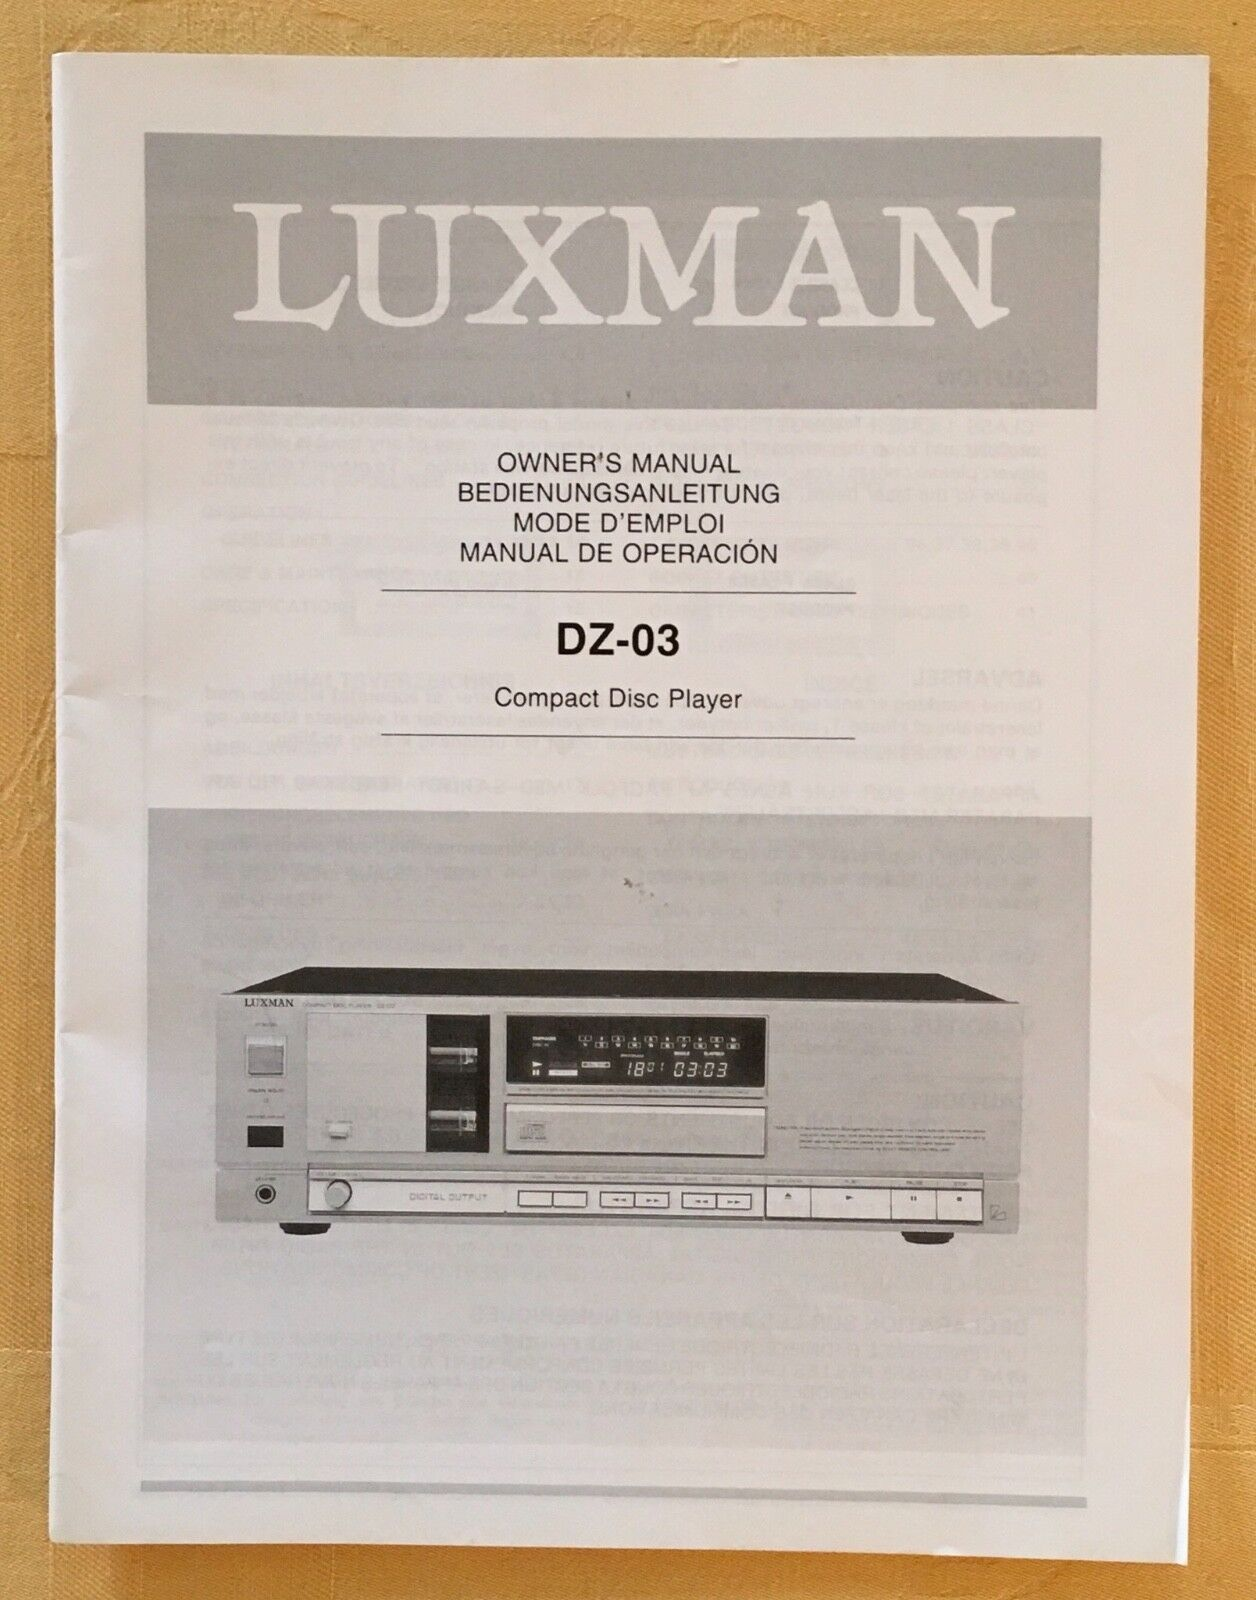 Luxman DZ 03 Röhren CD Player Bedienungsanleitung owner manual BDA Deutsch